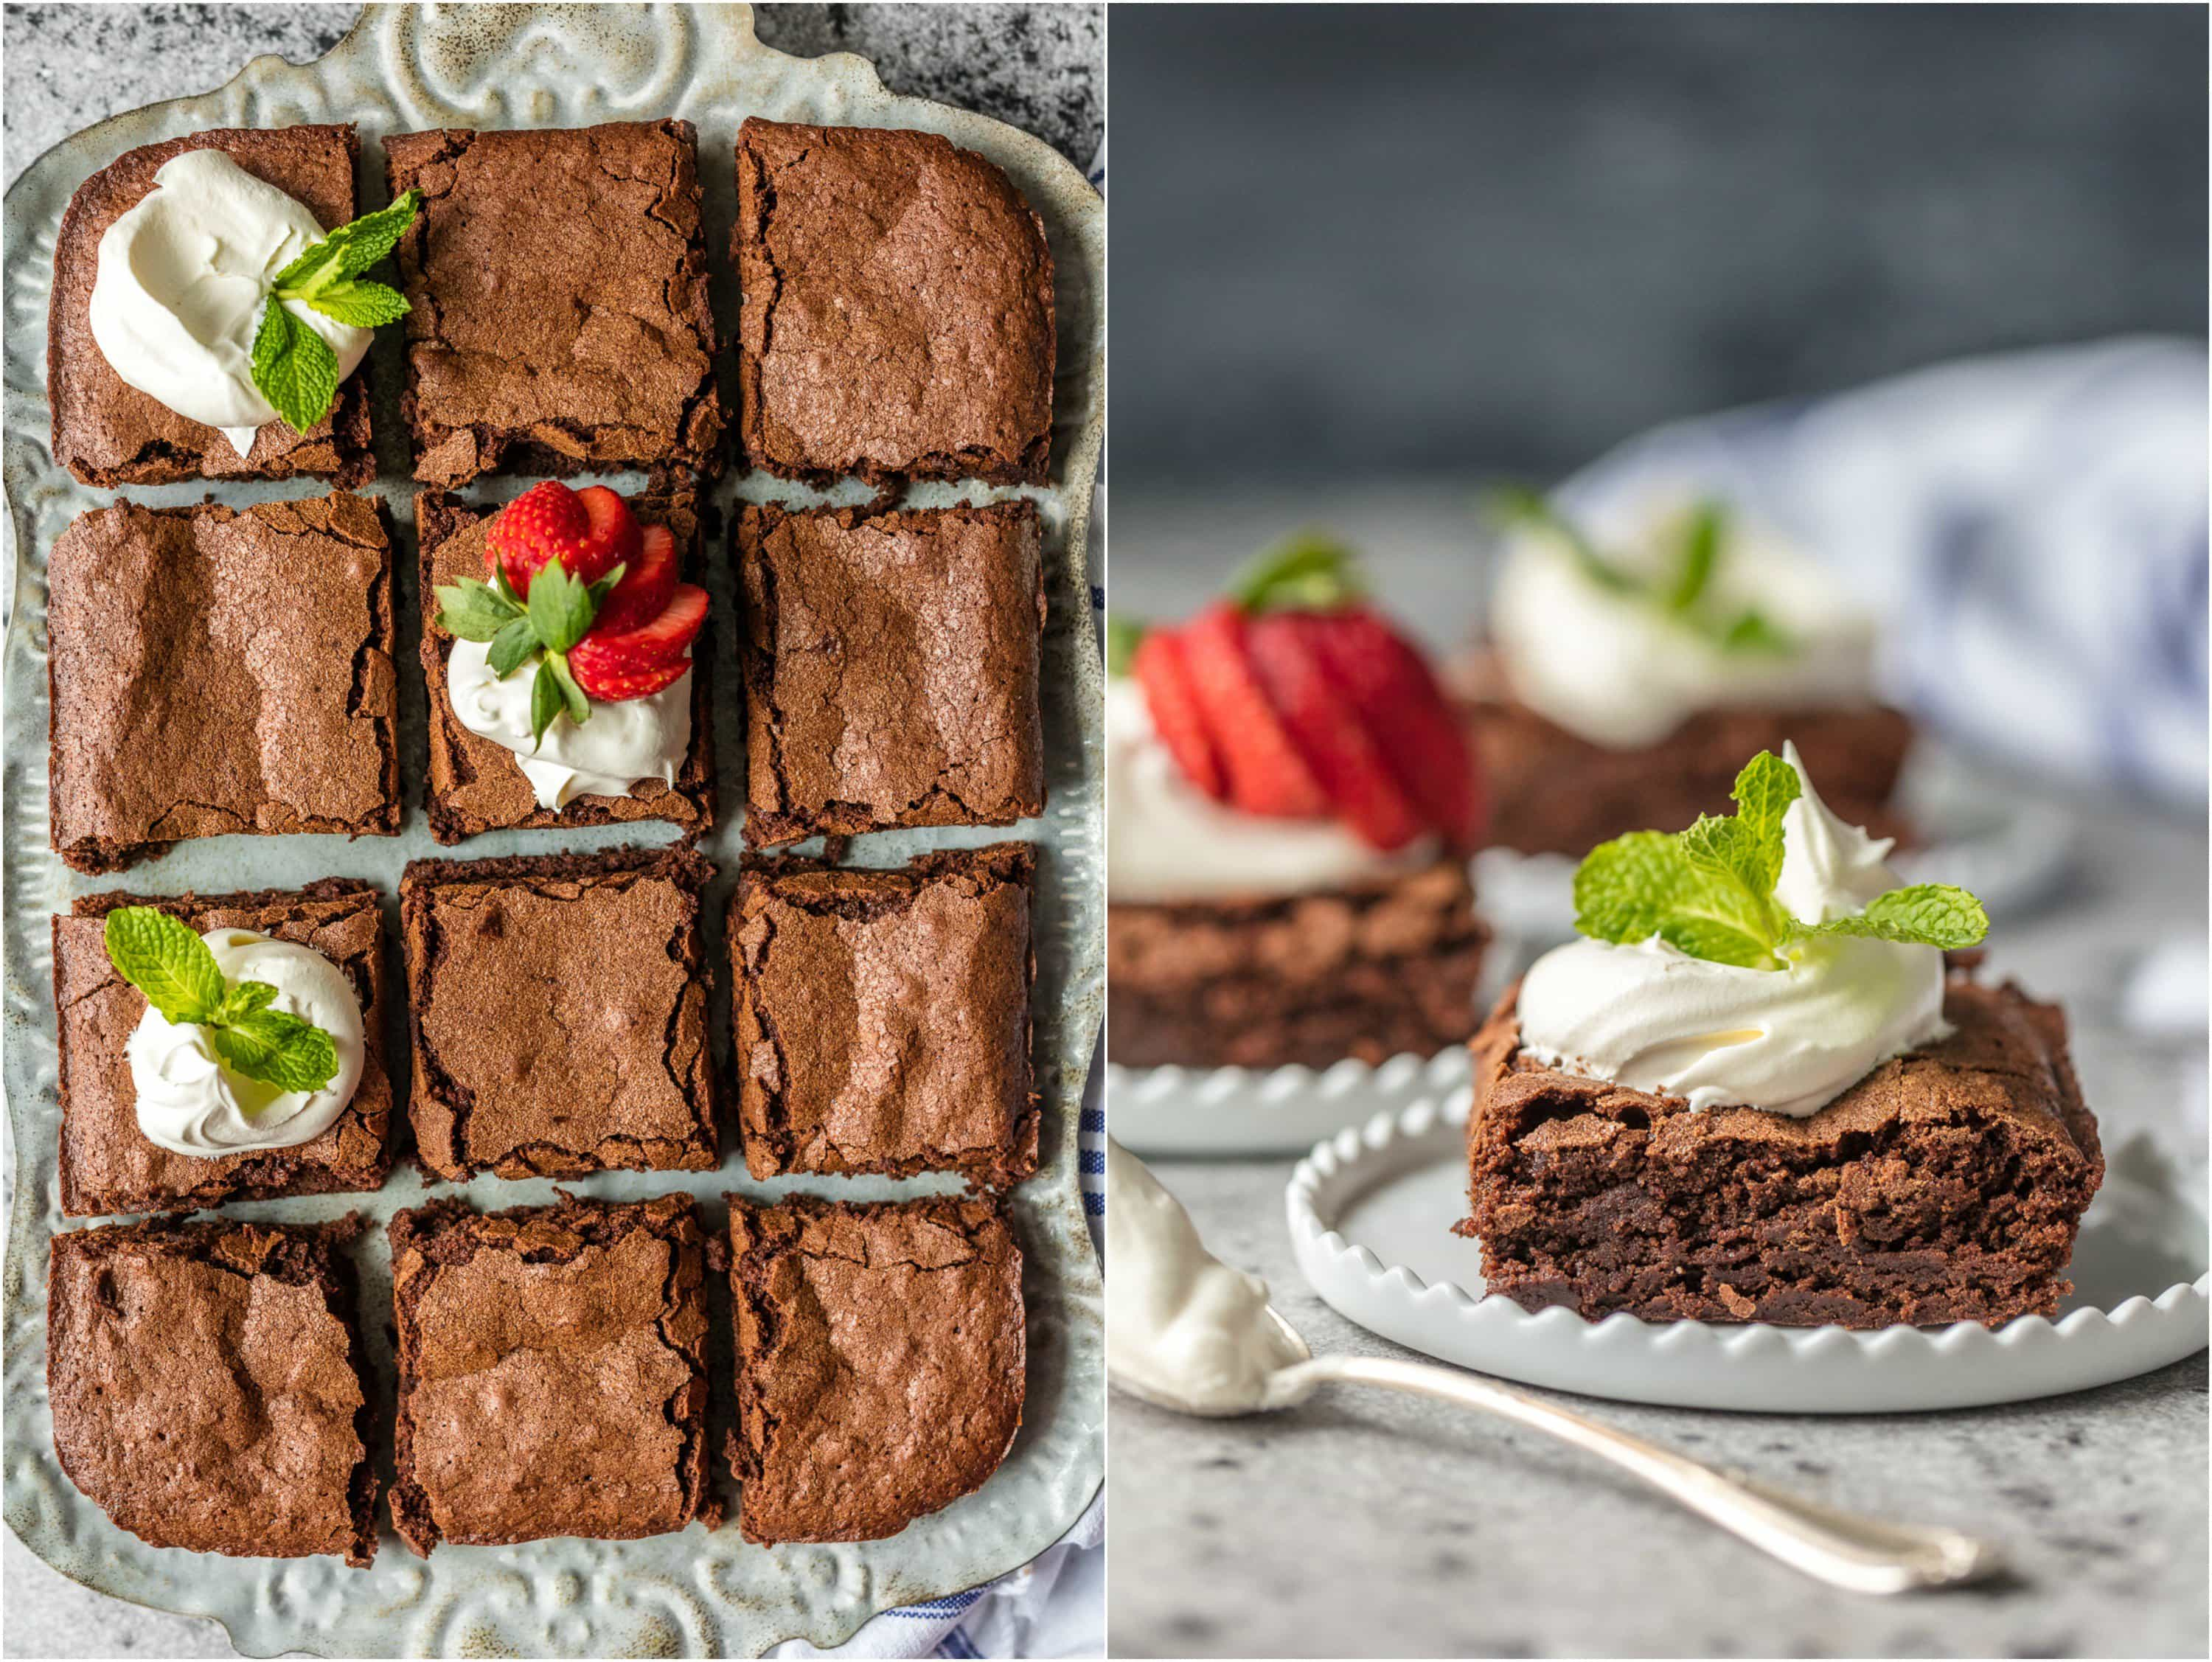 These BEST HOMEMADE BROWNIES FROM SCRATCH will be your favorite brownie recipe EVER! Super dense, moist, rich, and perfect!